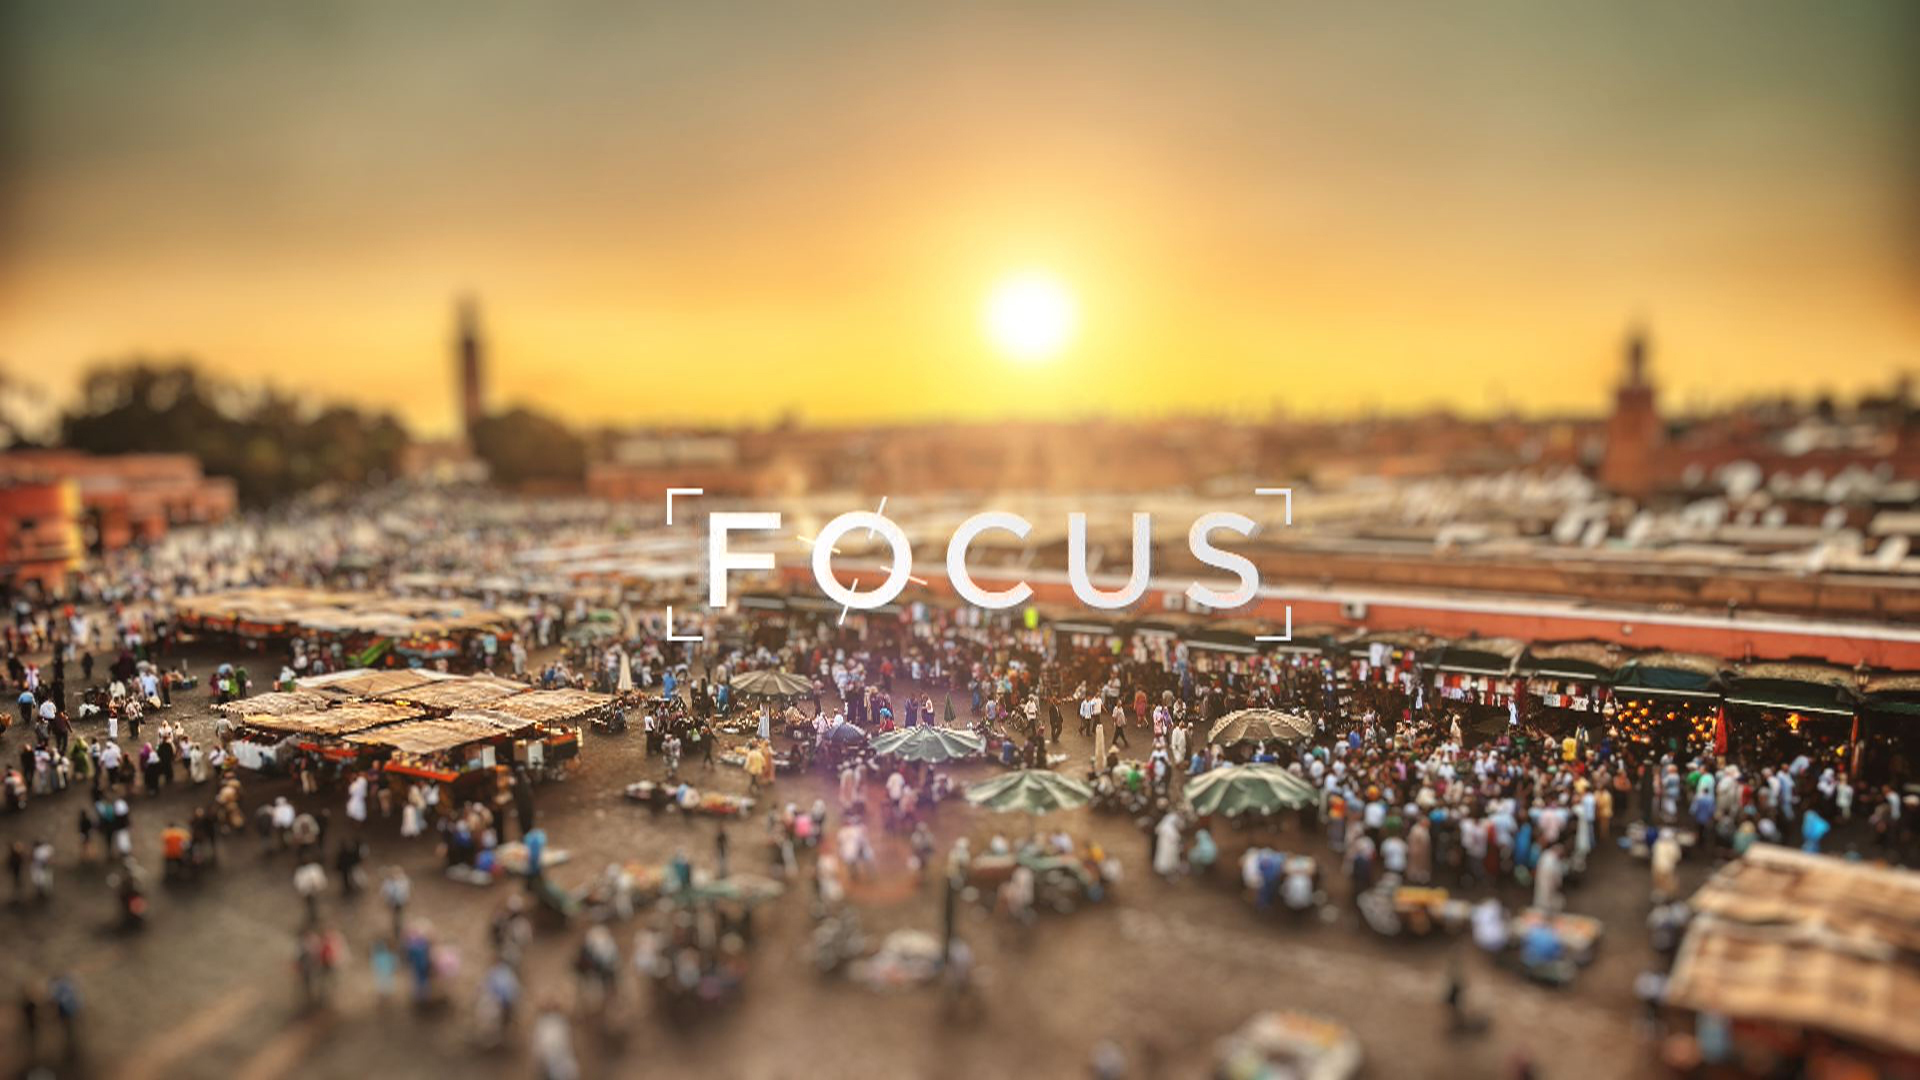 In depth analysis of an event or current affairs issue that adopts a flexible approach to storytelling to suit  the subject.. ​Our Focus team cover subjects as diverse as a major business forum ​to the latest news  report on renewable energy, sustainable development, infrastructure and much more.​